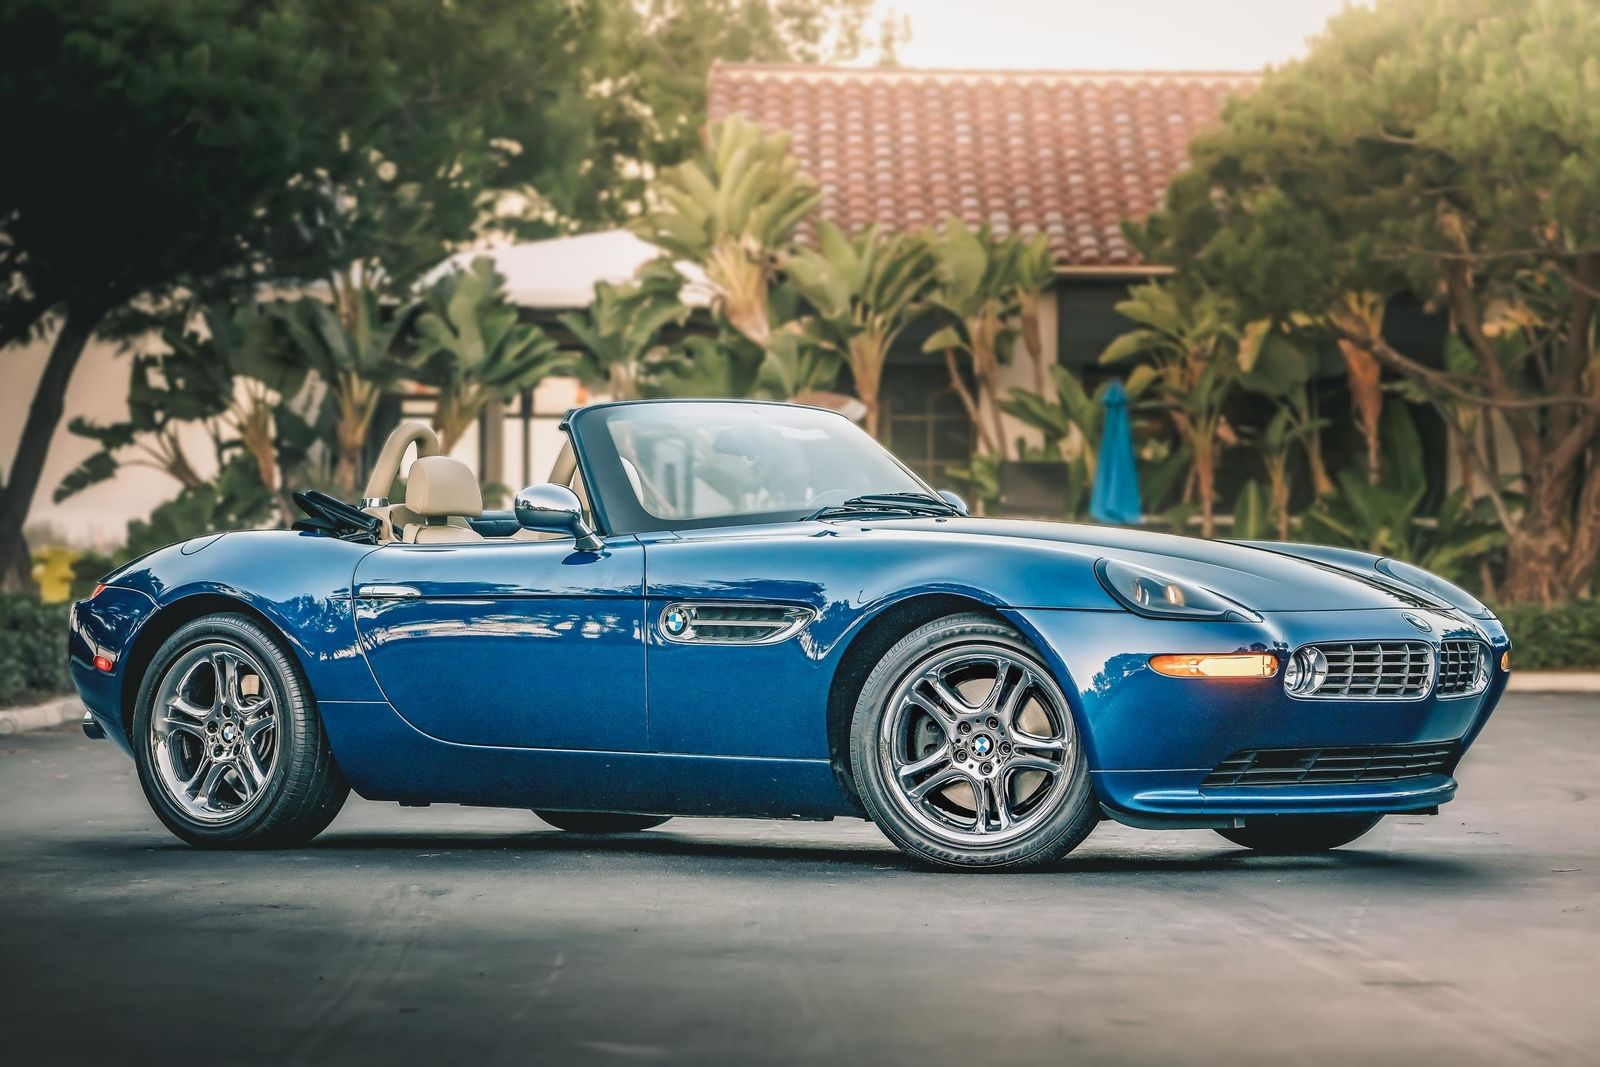 2000 Bmw Z8 With 4 602 Miles German Cars For Sale Blog